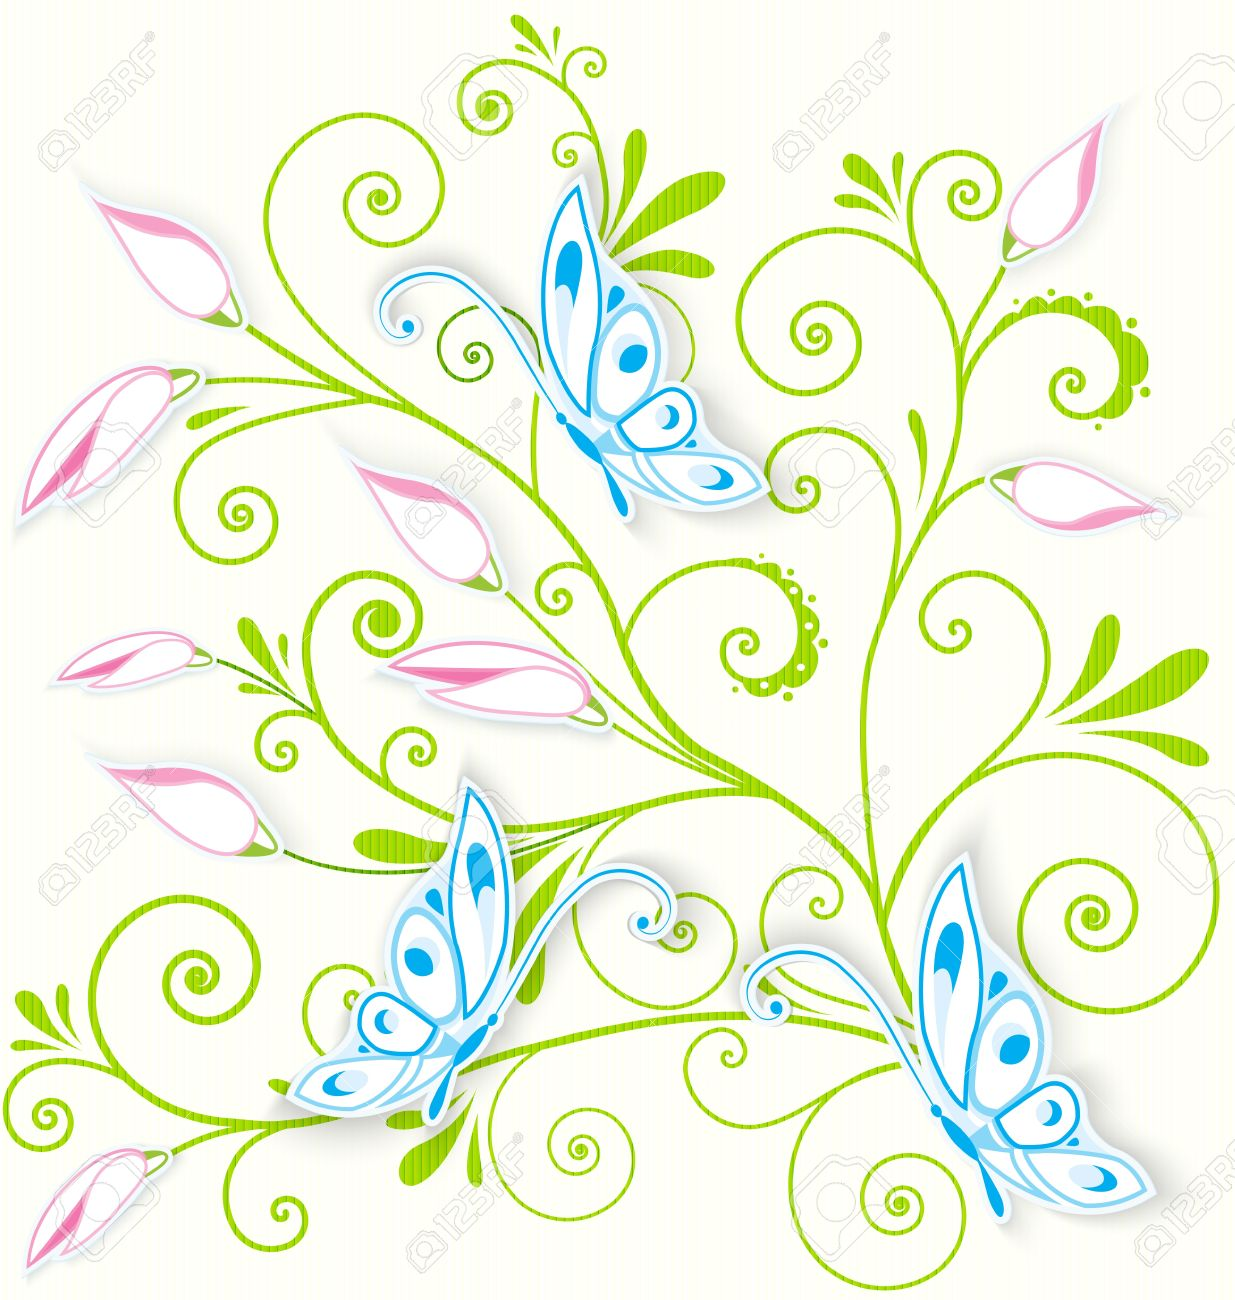 Vector illustration of blue butterflies cut out of paper over floral spiral textured background Stock Vector - 16901141